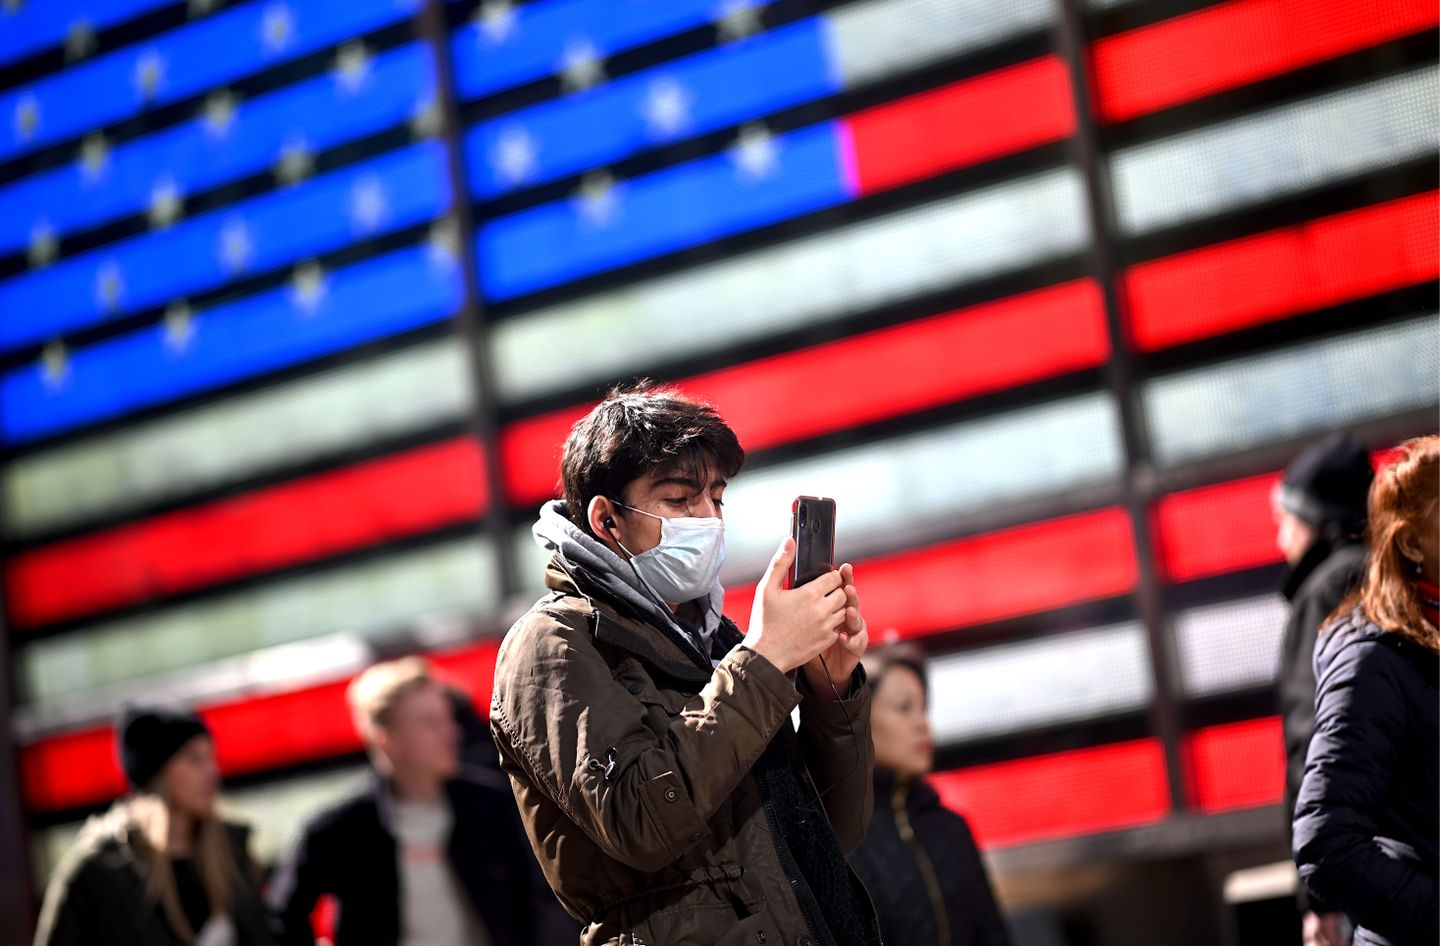 A man wears a mask as uses his cellphone at Times Square in front of an American flag on March 5, 2020, in New York City